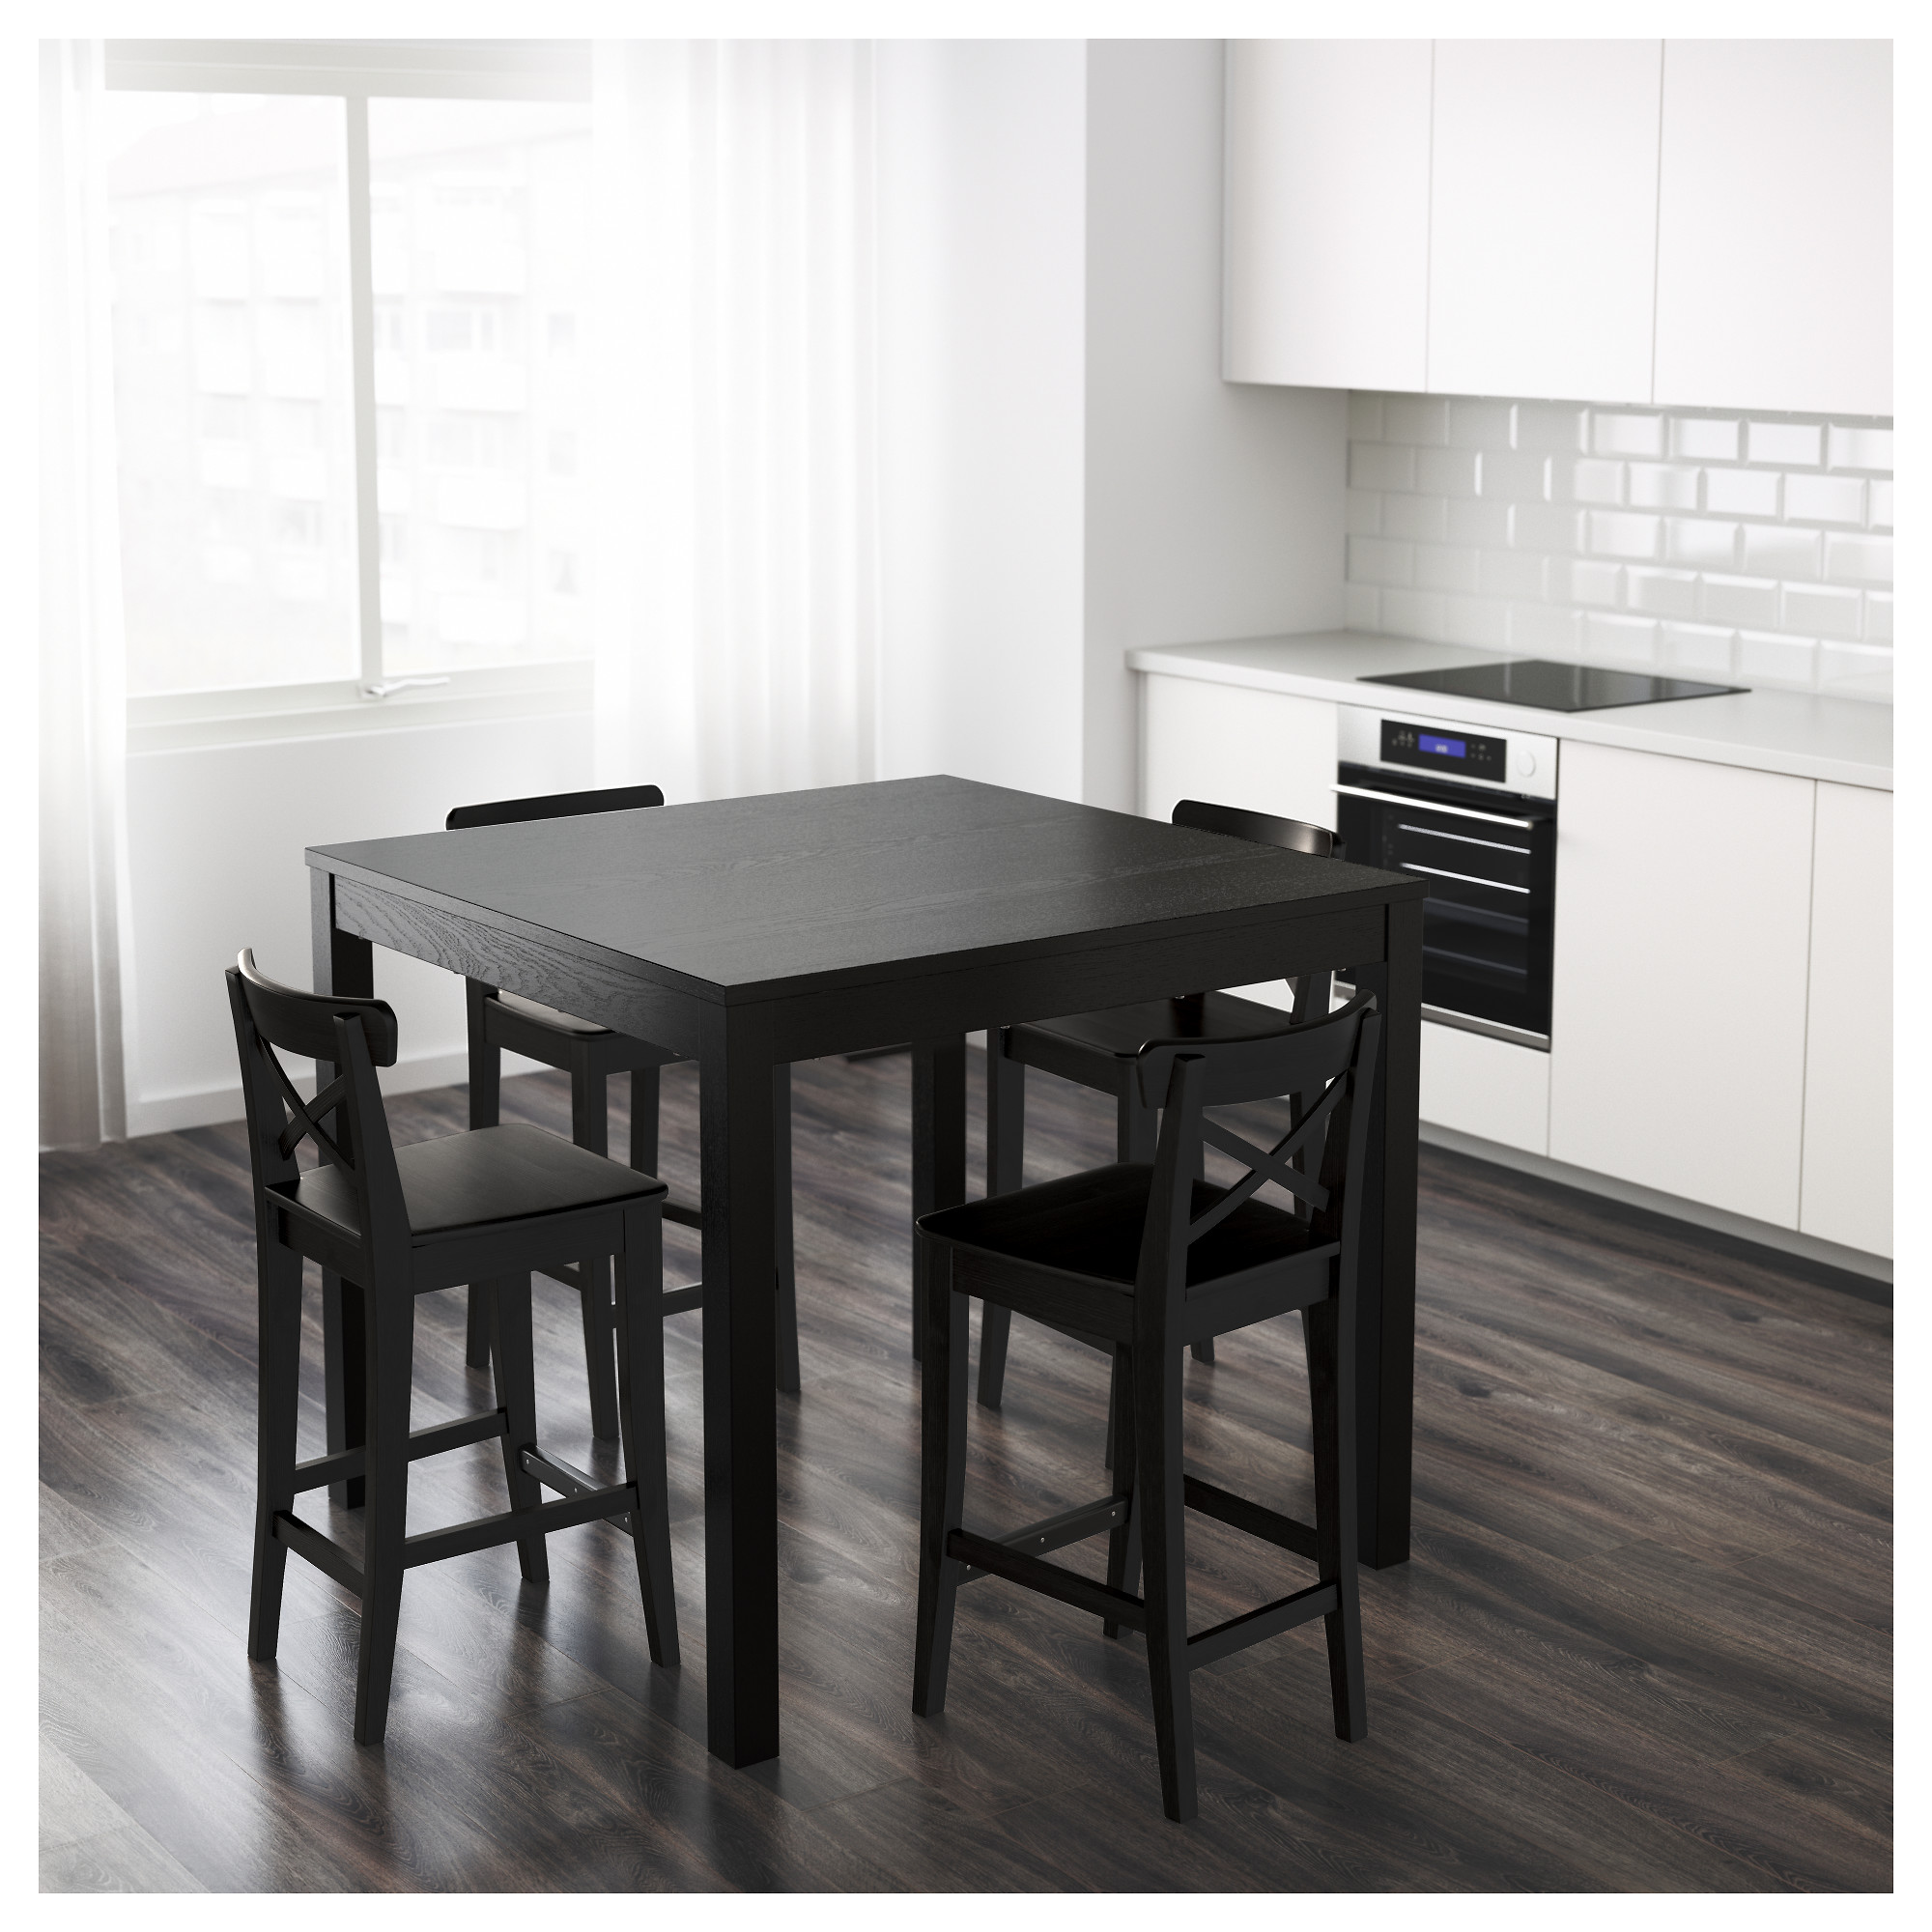 beautiful table haute mange debout ikea with table haute mange debout ikea. Black Bedroom Furniture Sets. Home Design Ideas